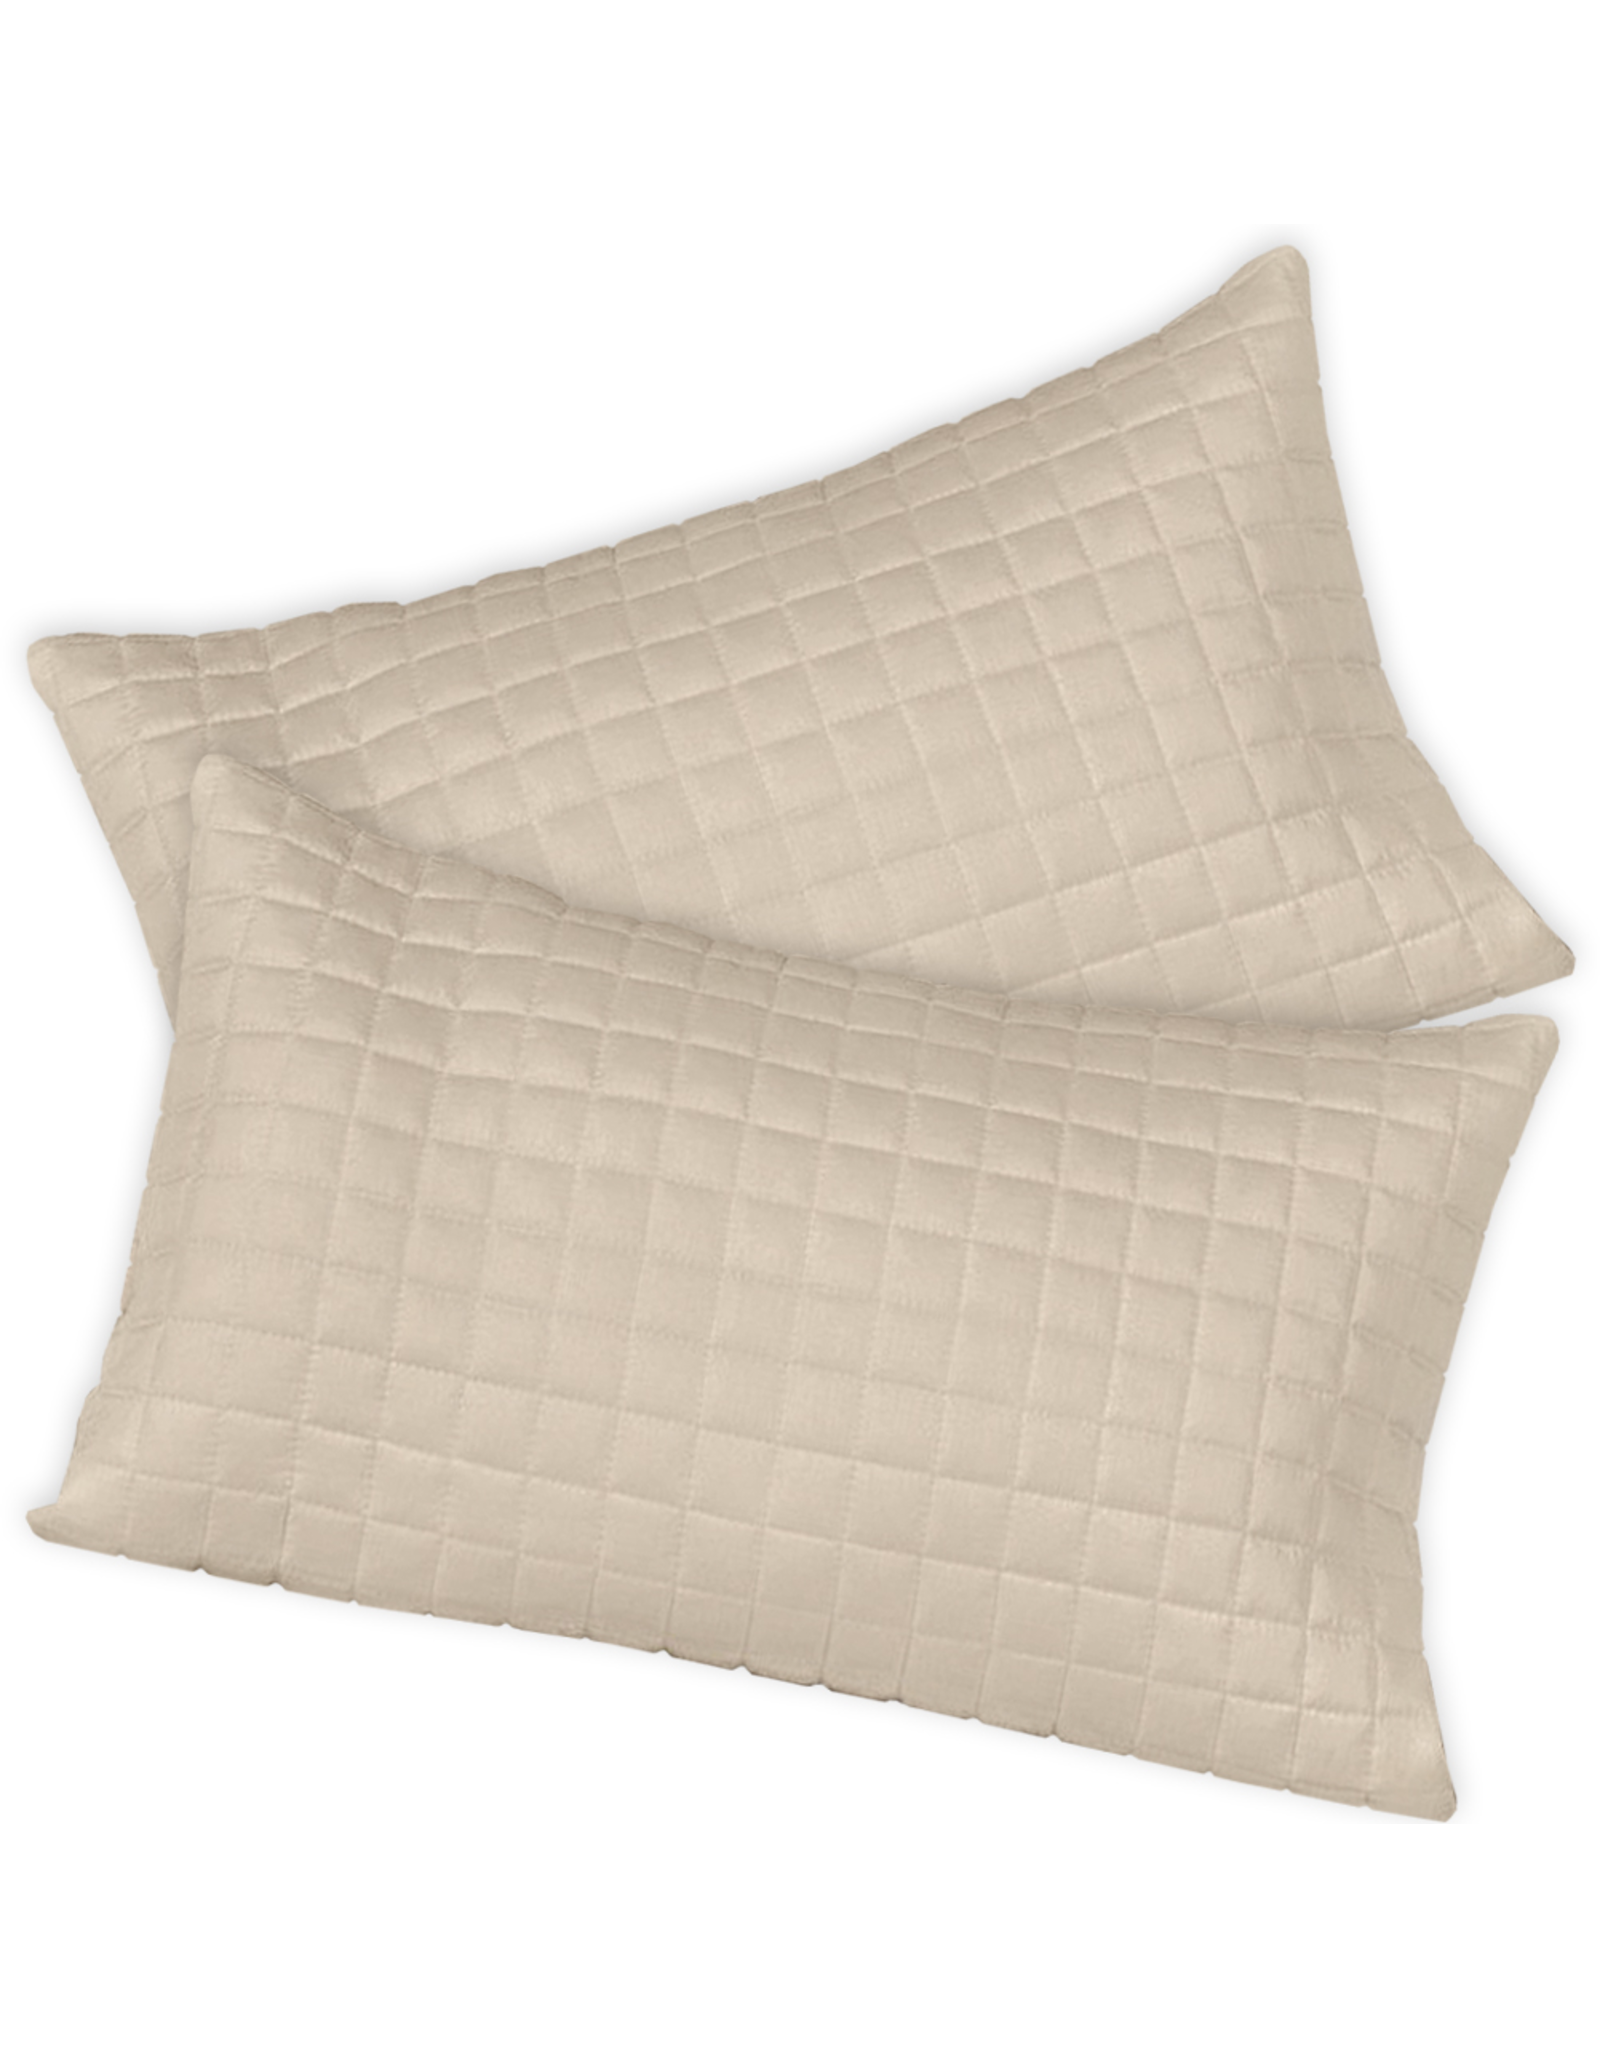 Home Source International Bamboo Box Quilted Standard Shams 20x26 Hemp Home Source International